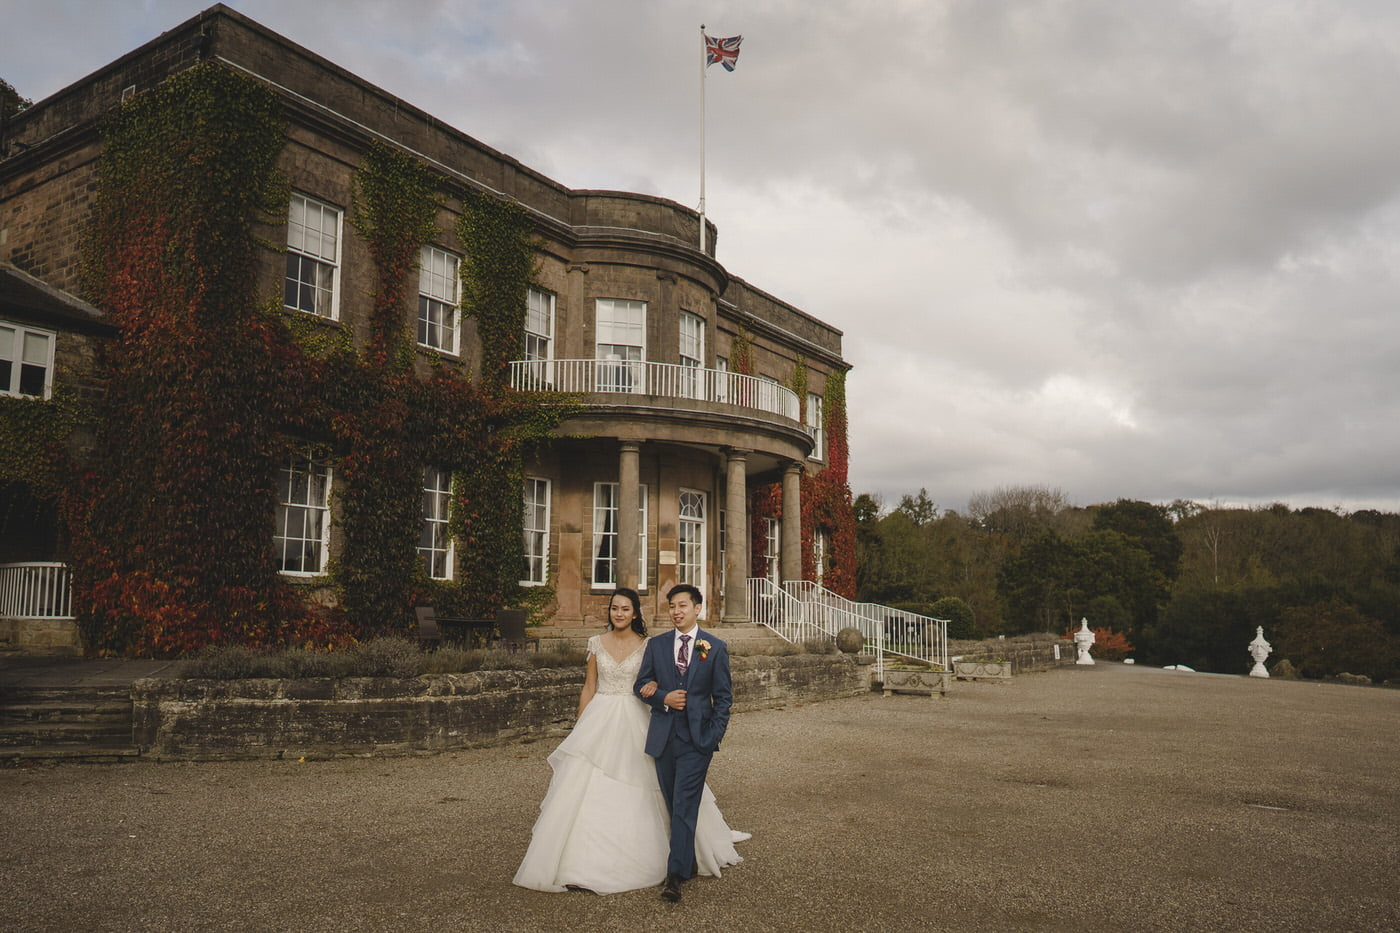 The bride and groom enjoy a walk around Woodhall Hall